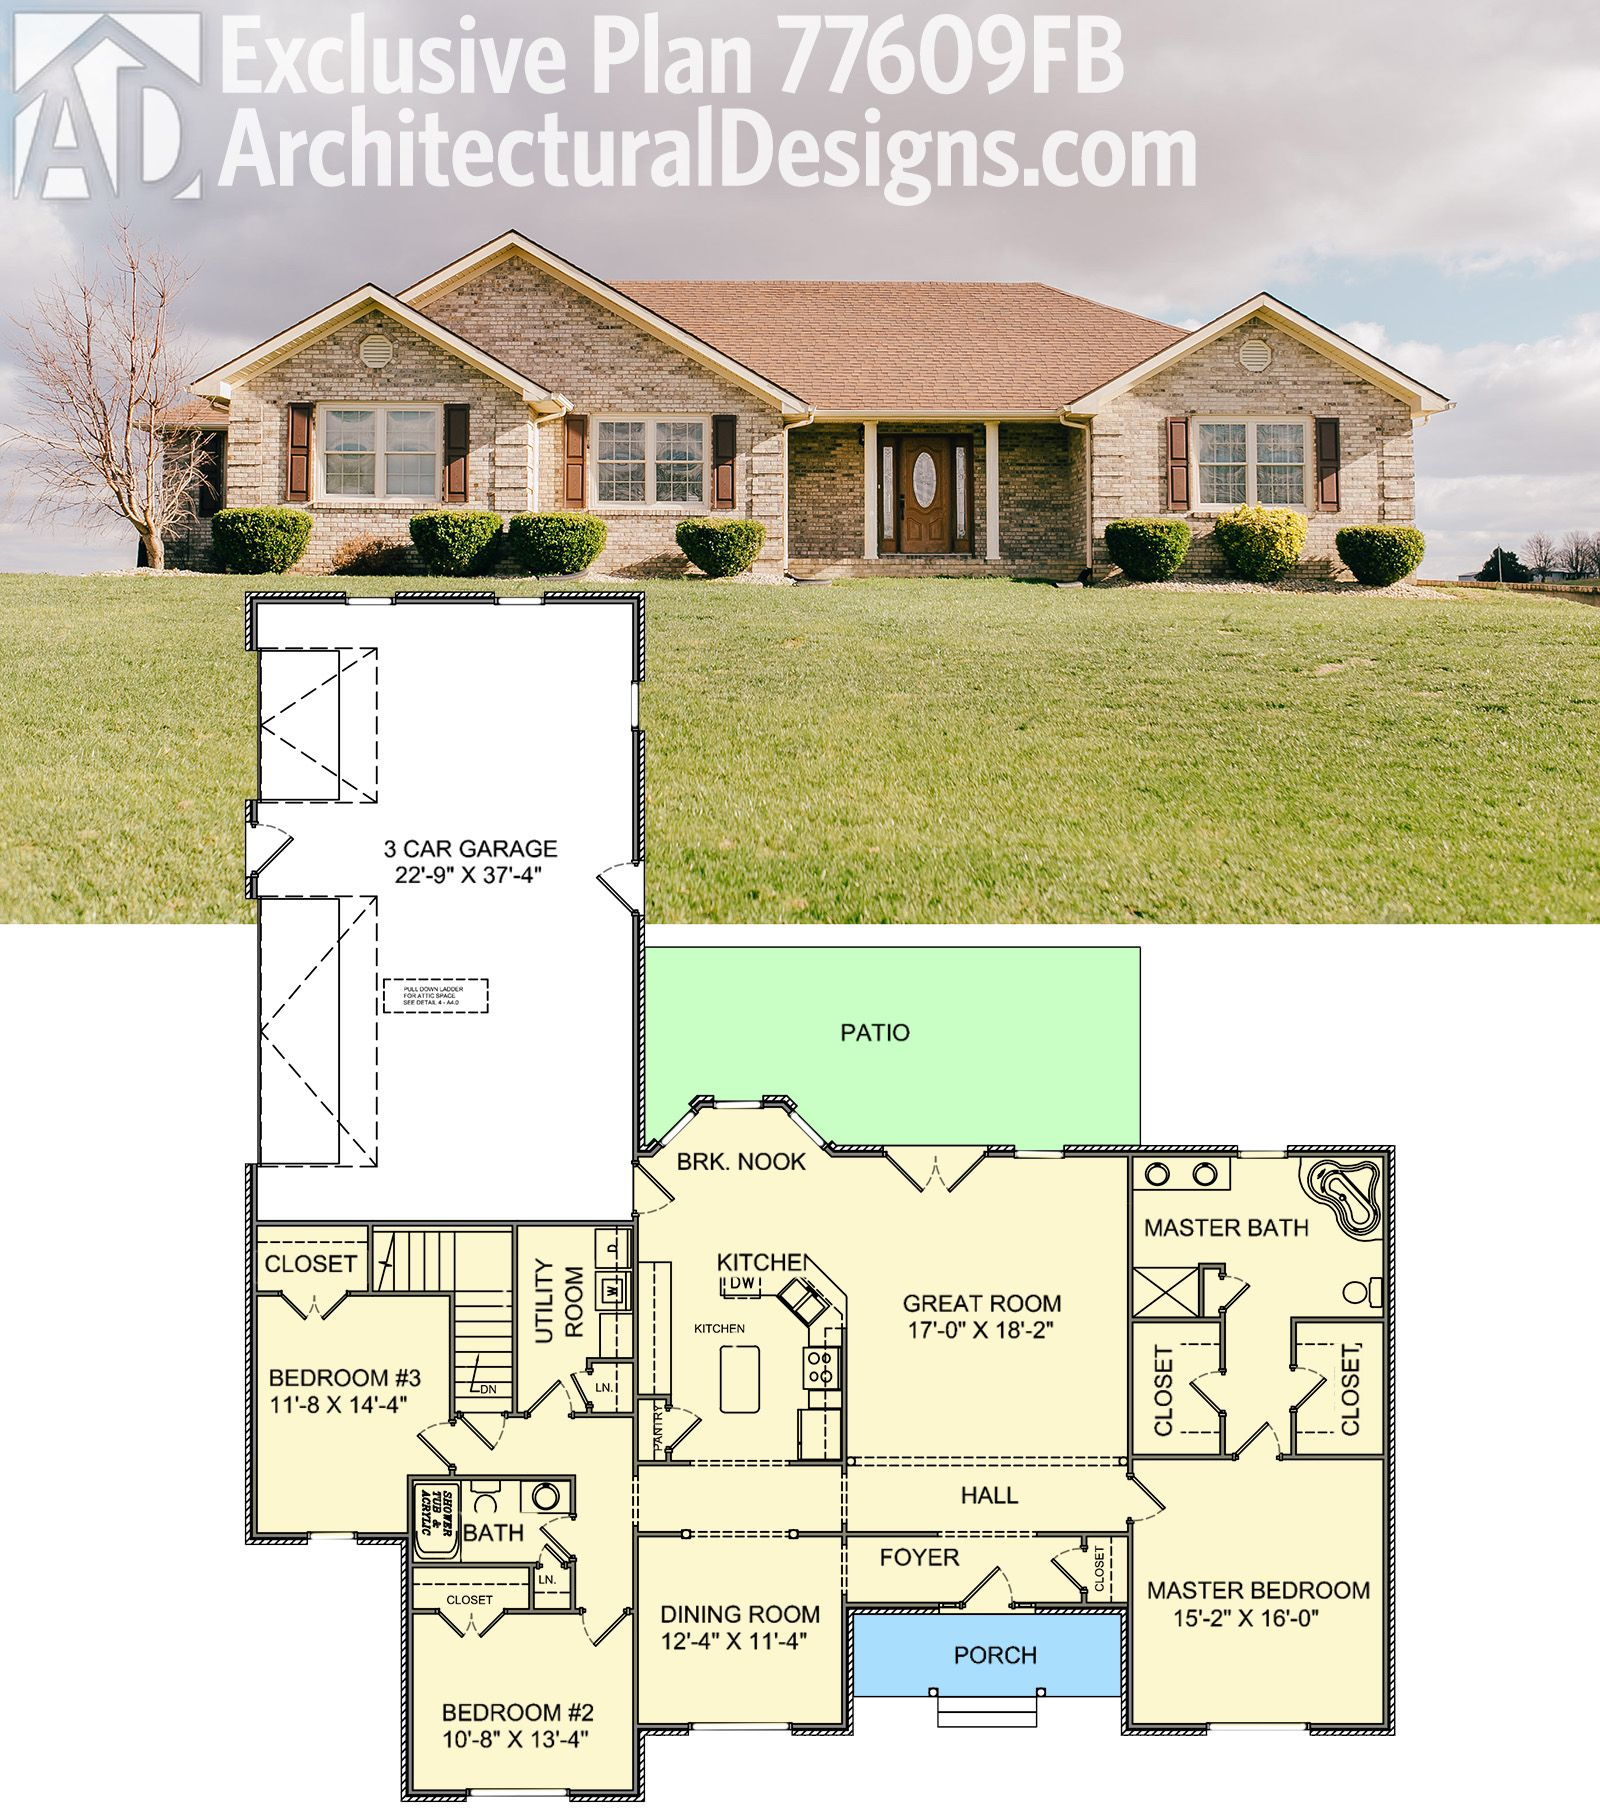 Architectural Designs Exclusive House Plan 77609fb Gives